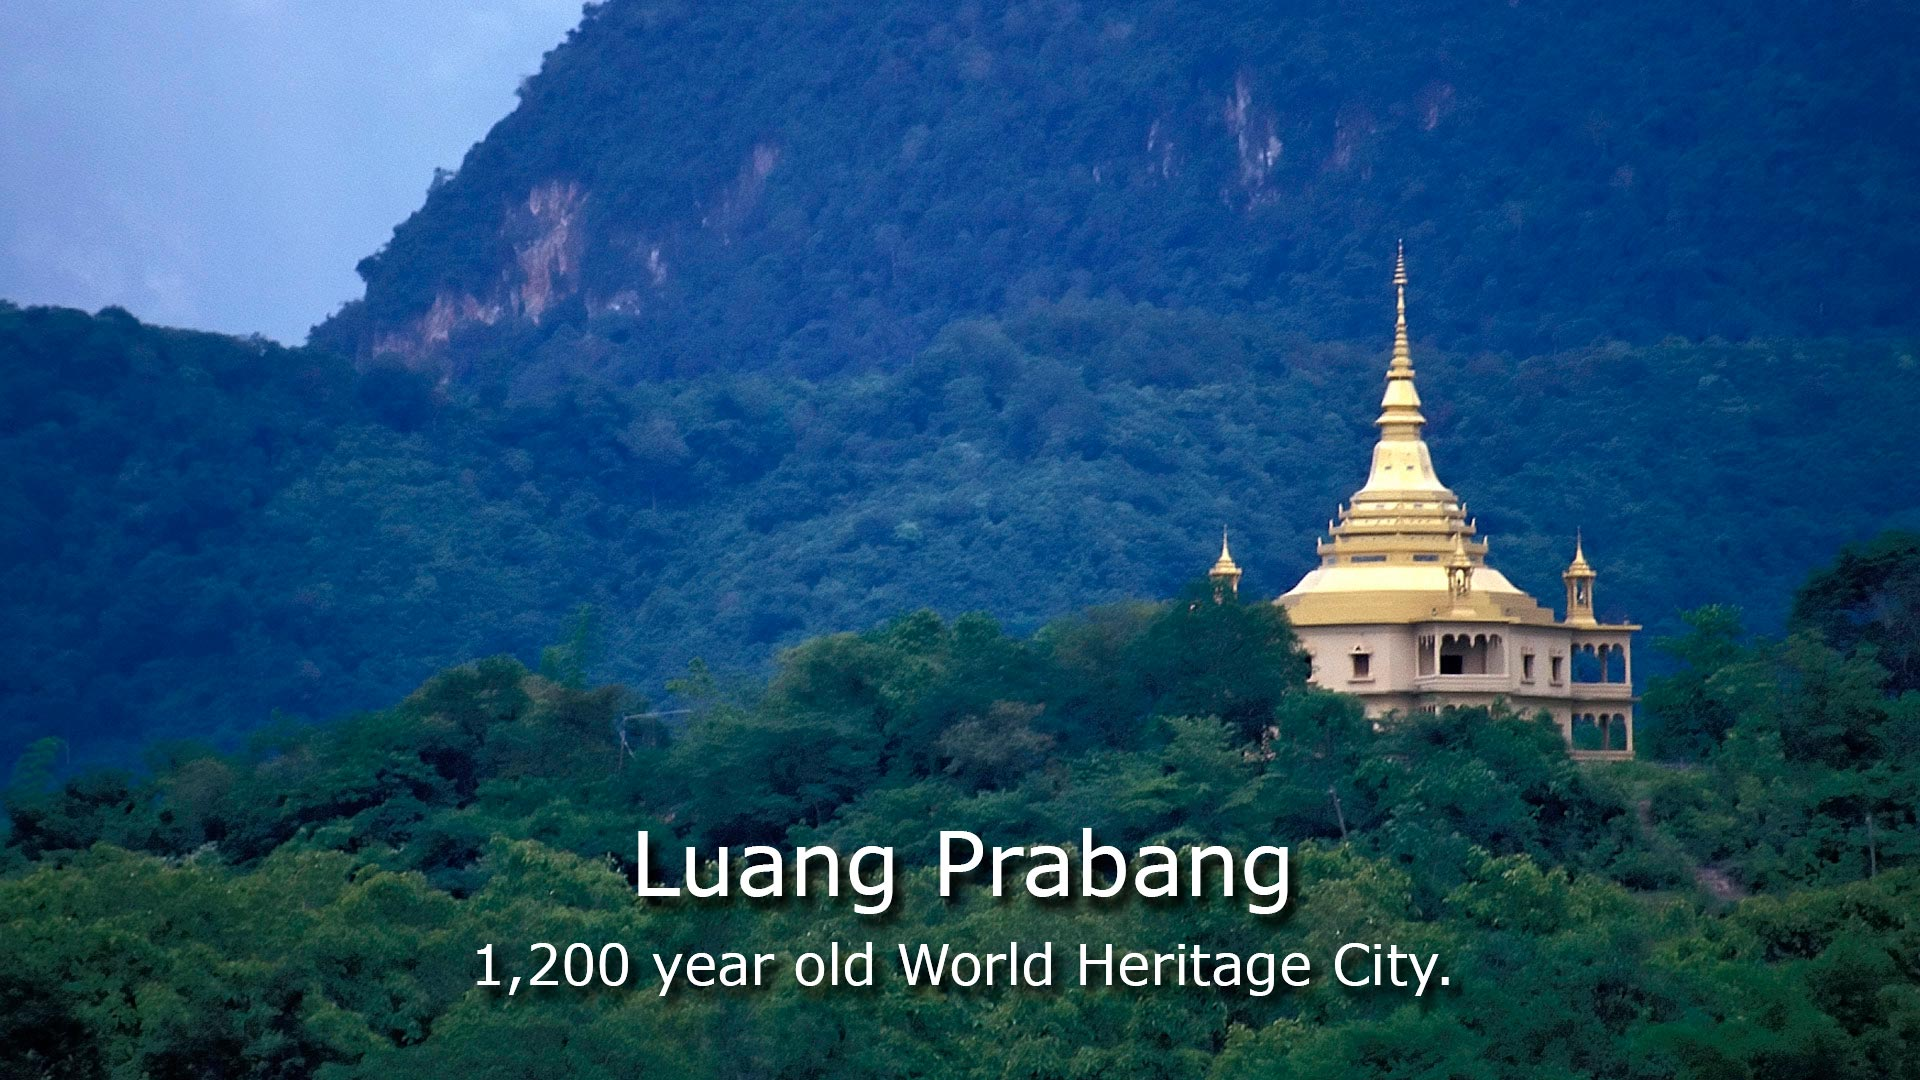 Luang Prabang - 1200 year old World Heritage city